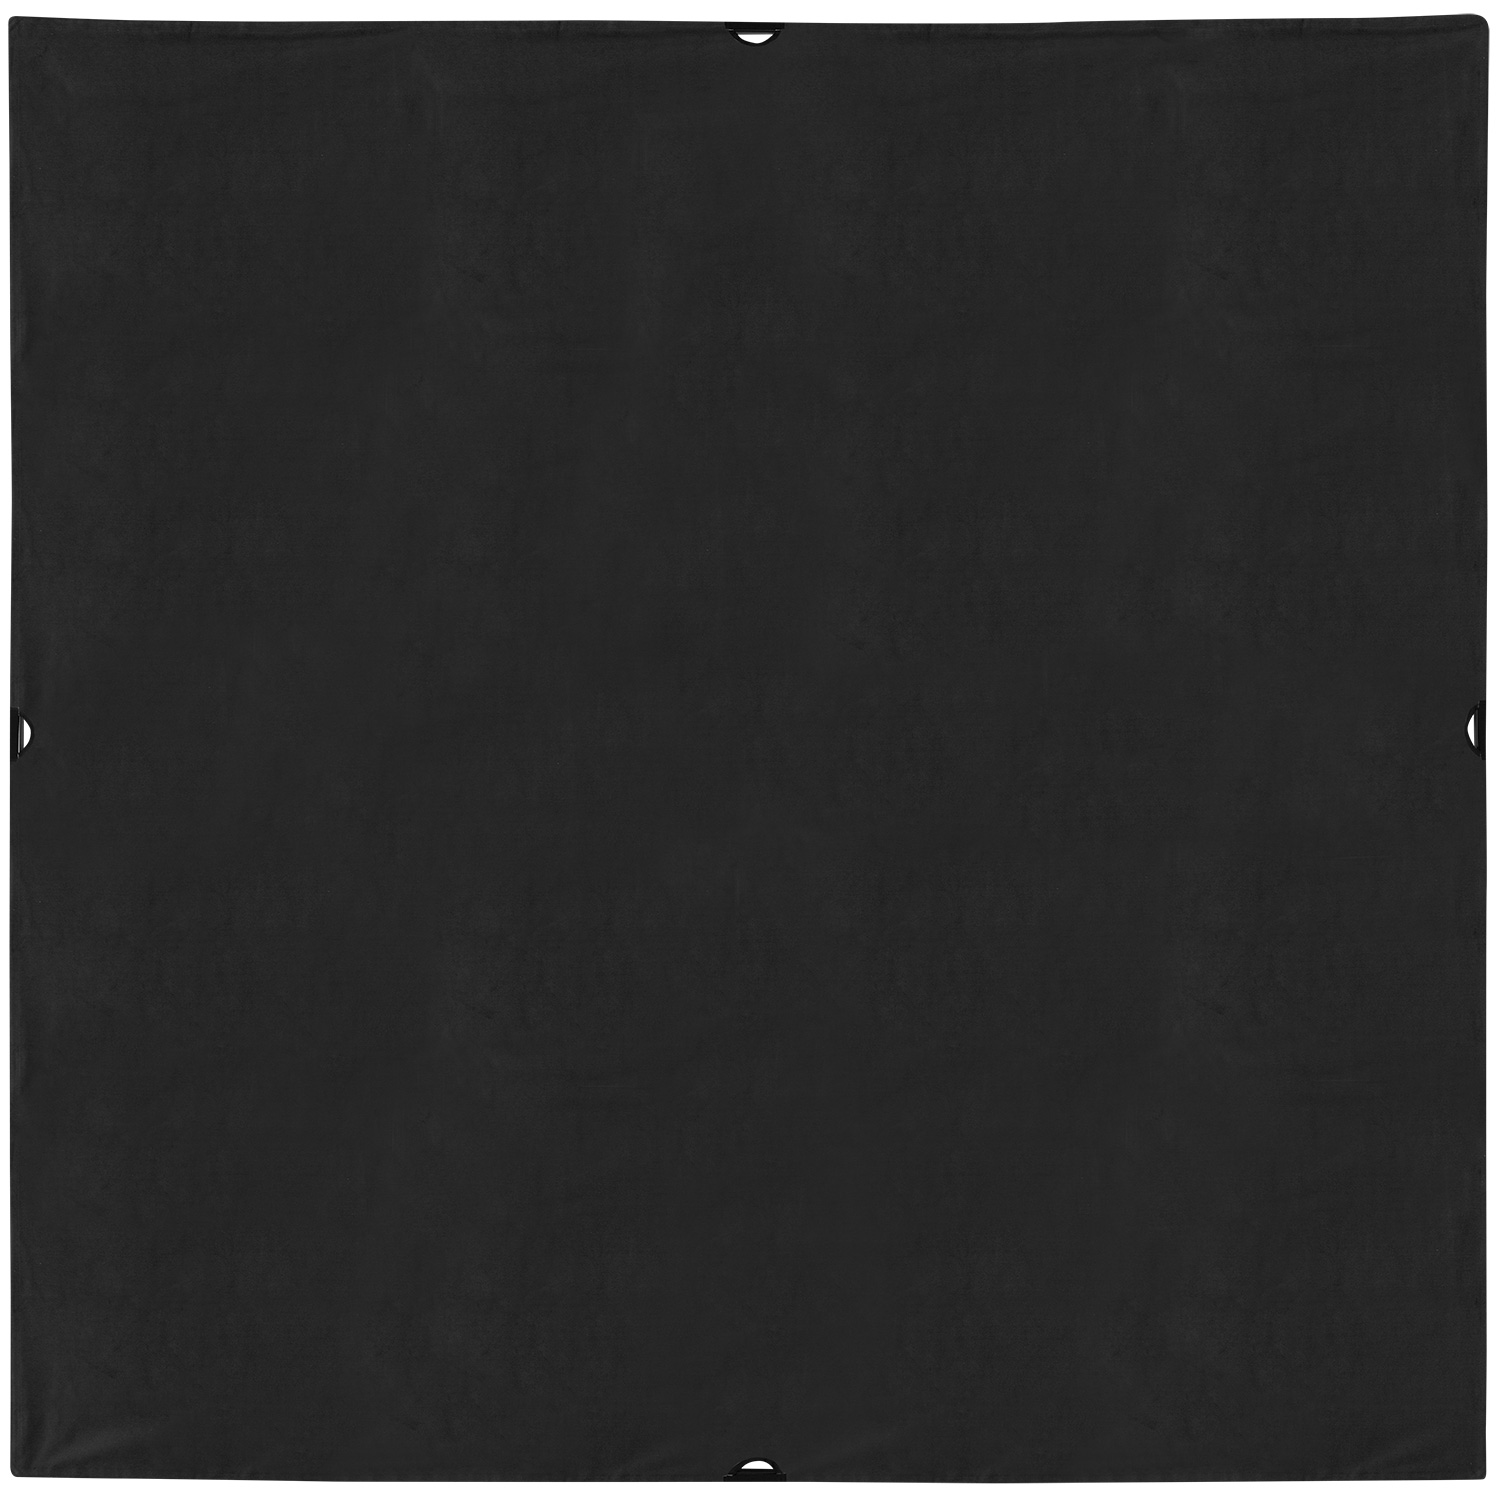 Scrim Jim 96-in. x 96-in. Solid Black Block Fabric